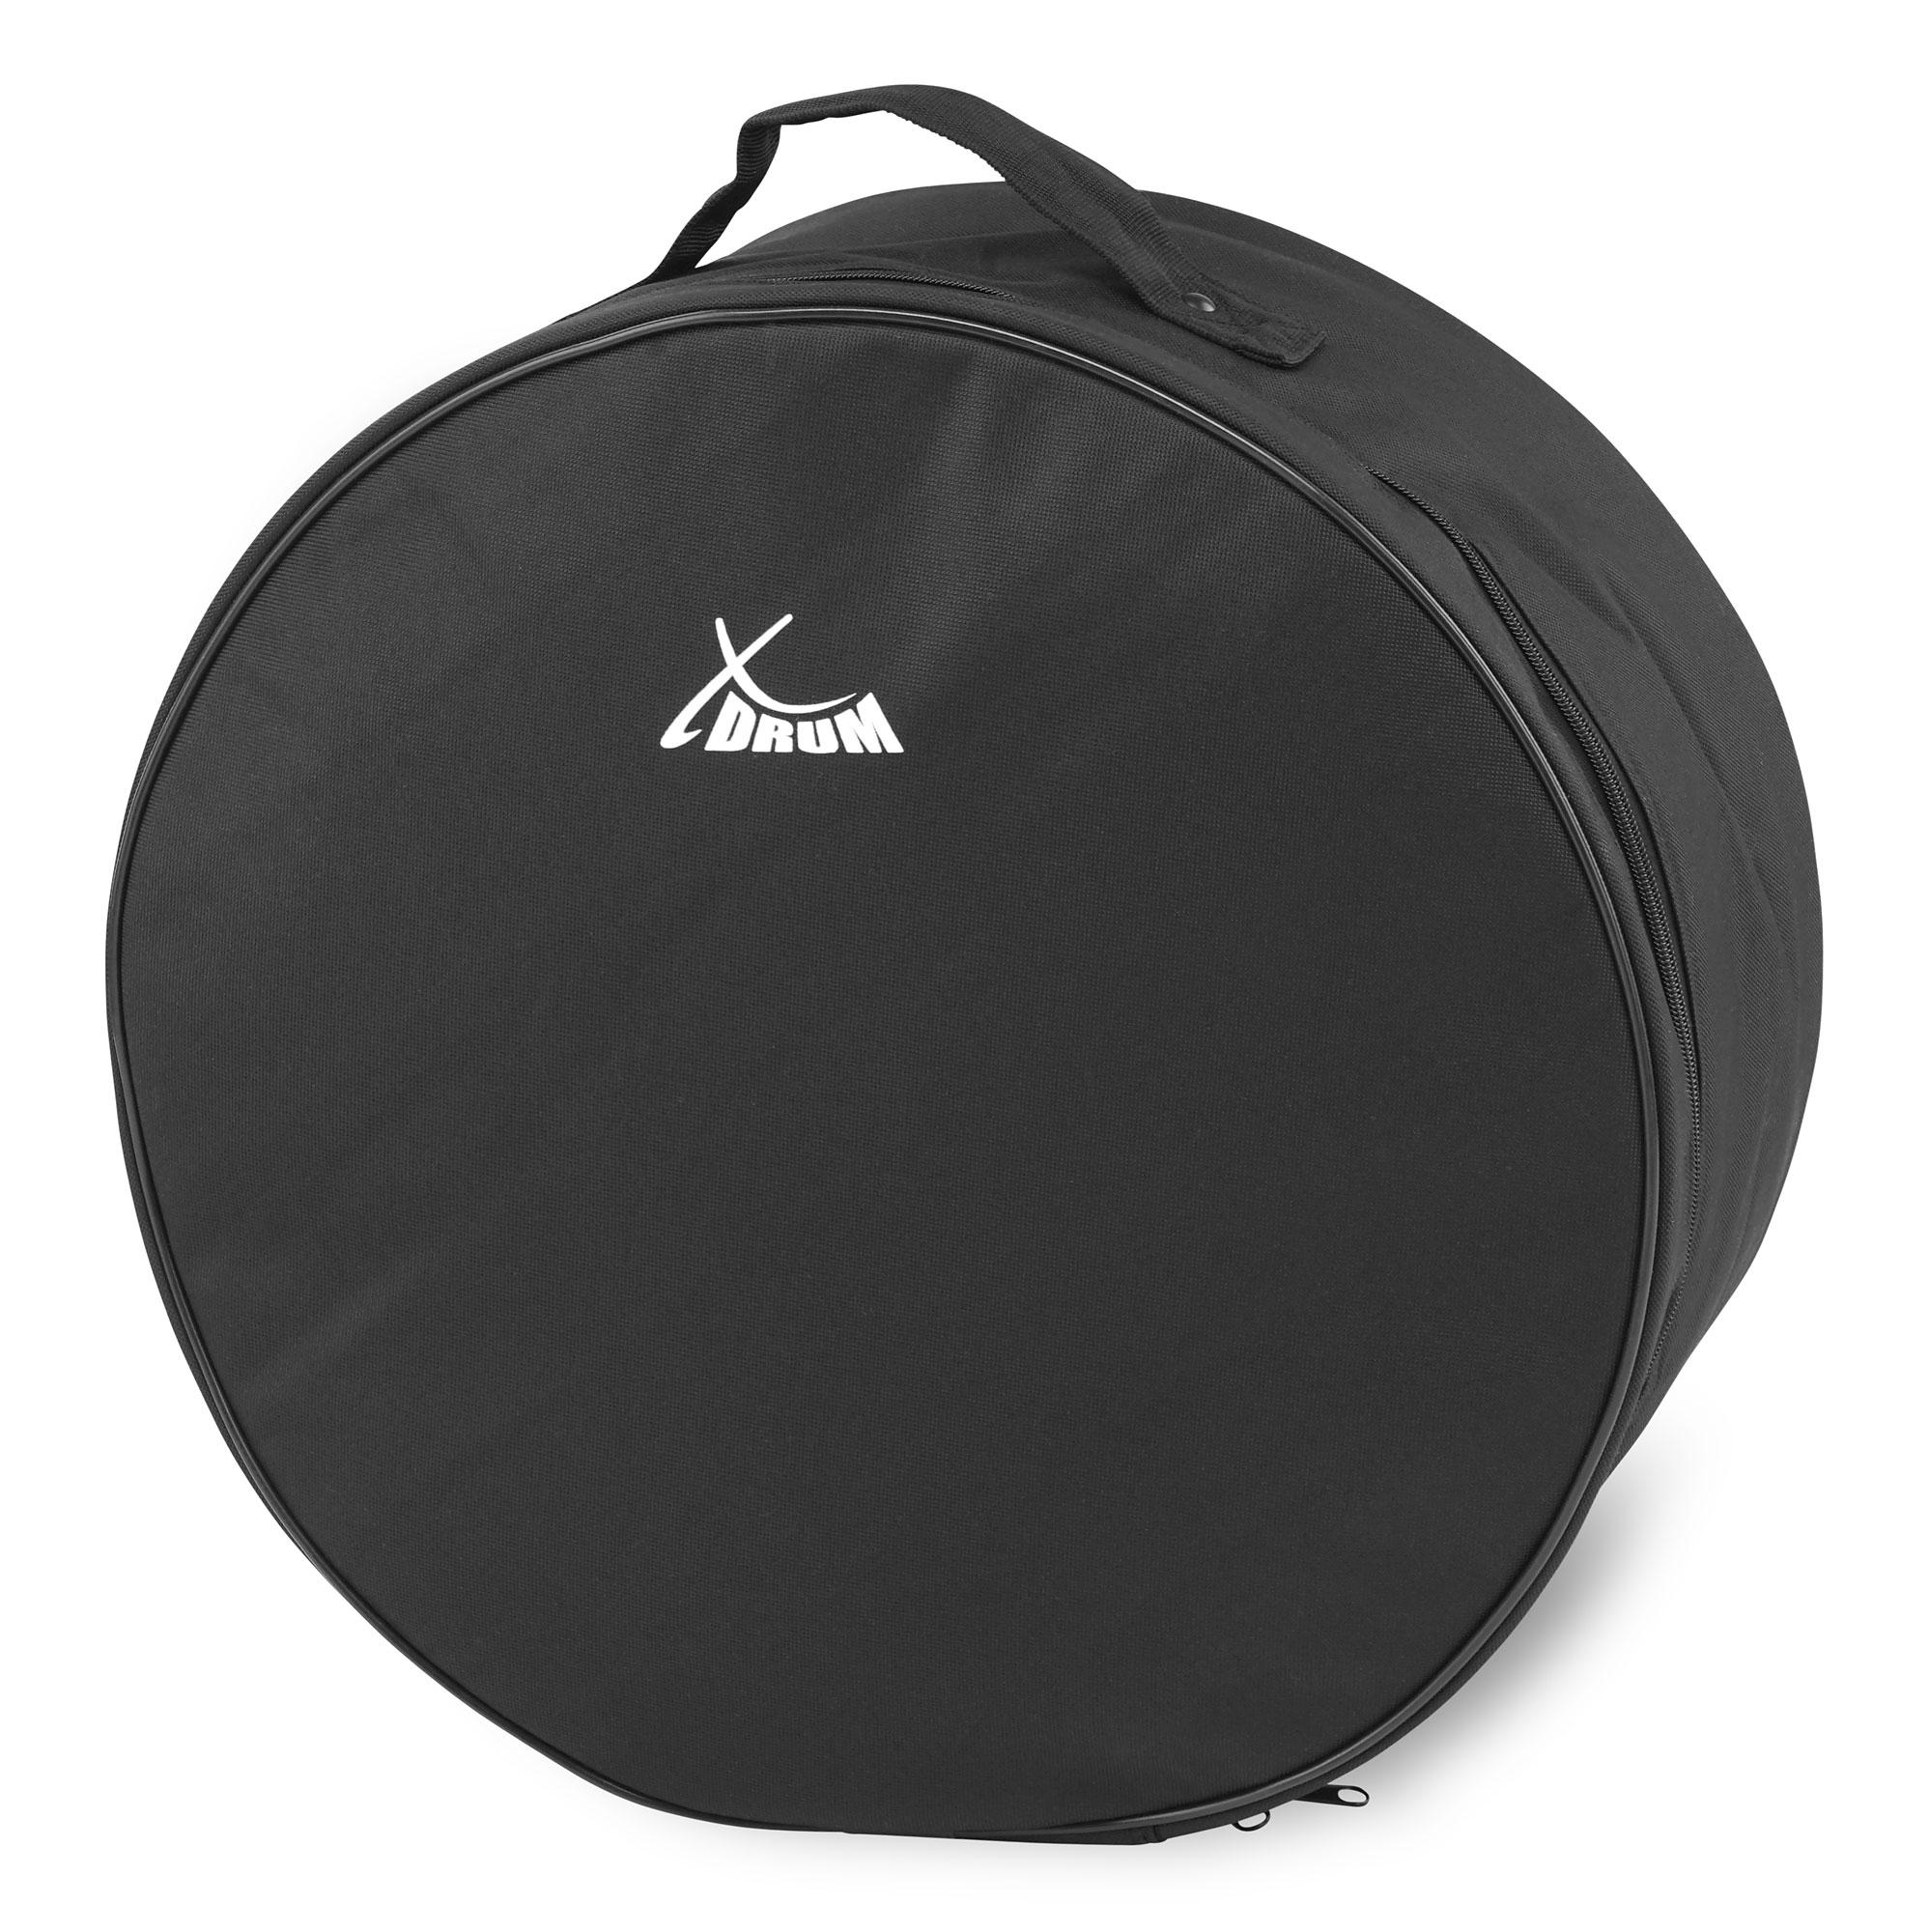 xdrum classic drumming bag for snare drum 14 x 6 5. Black Bedroom Furniture Sets. Home Design Ideas